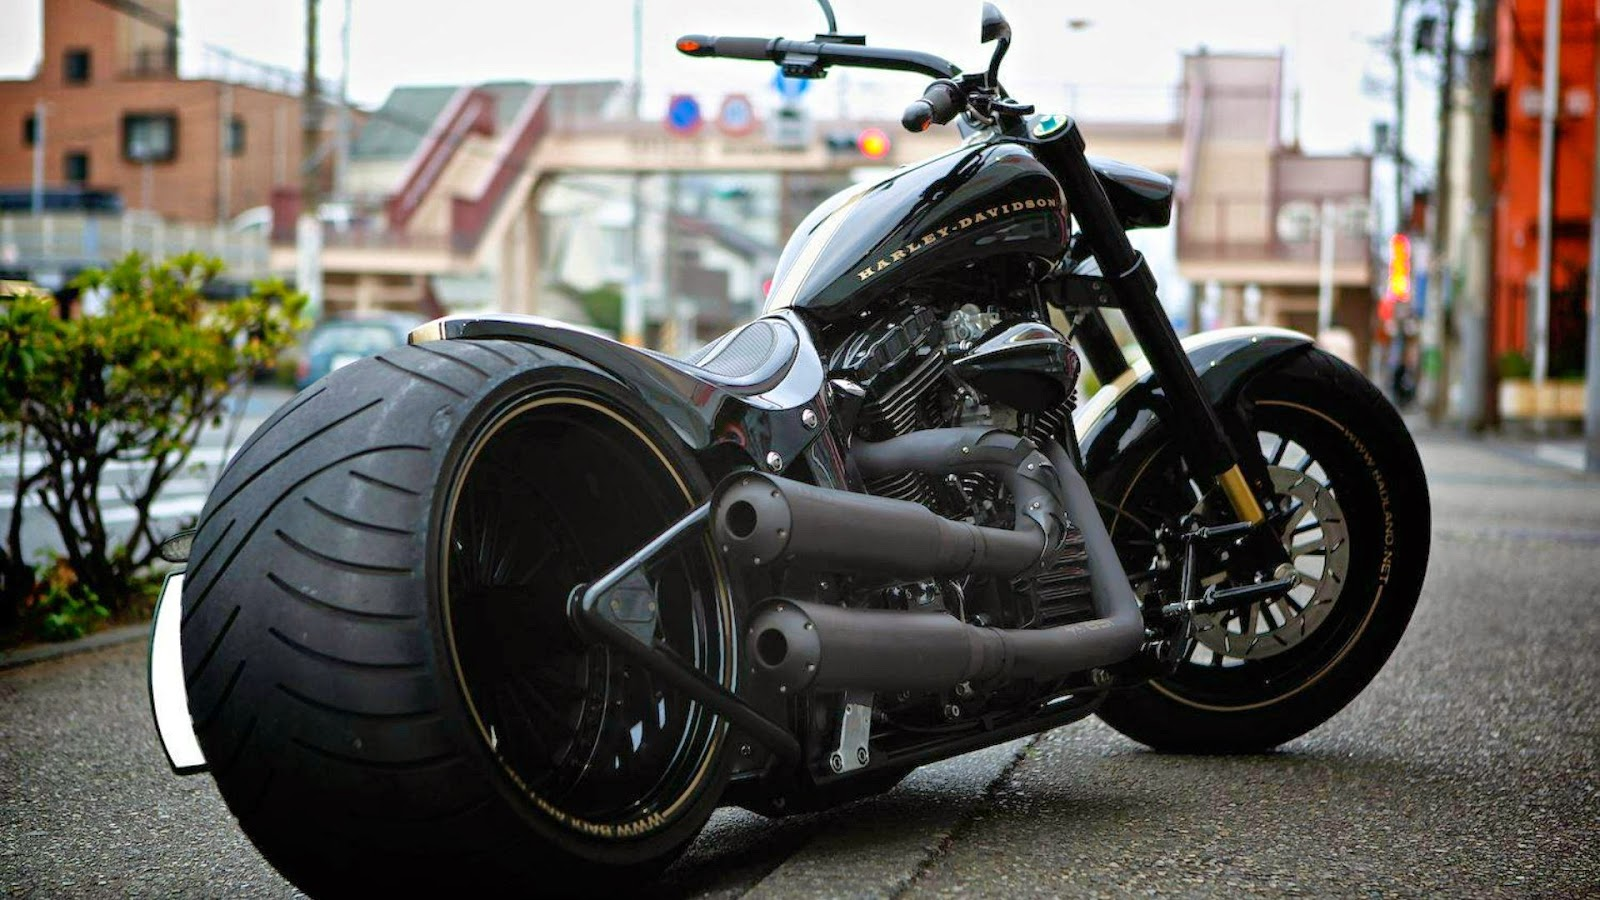 Harely Black Bike HD Wallpaper